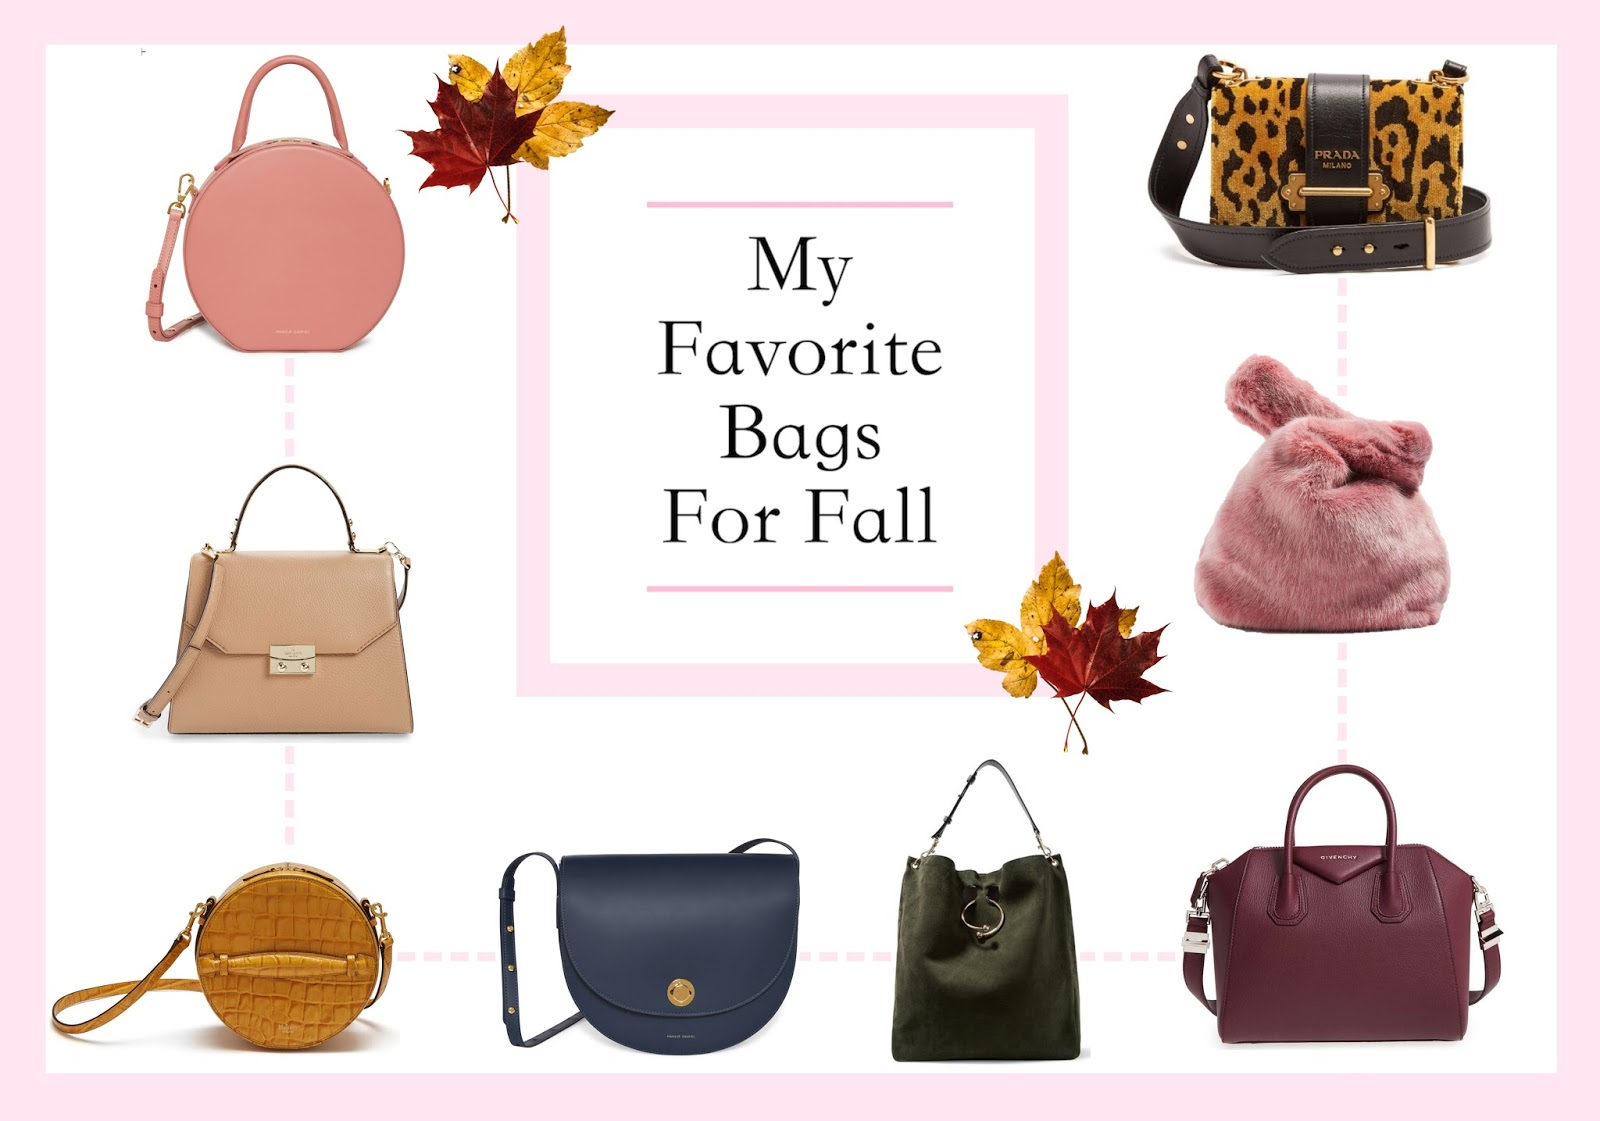 056b7ebfa8b784 My Favorite Bags For Fall 2017. Fall officially starts on Friday! I'm so  happy for the leaves to change and the weather to get cooler.